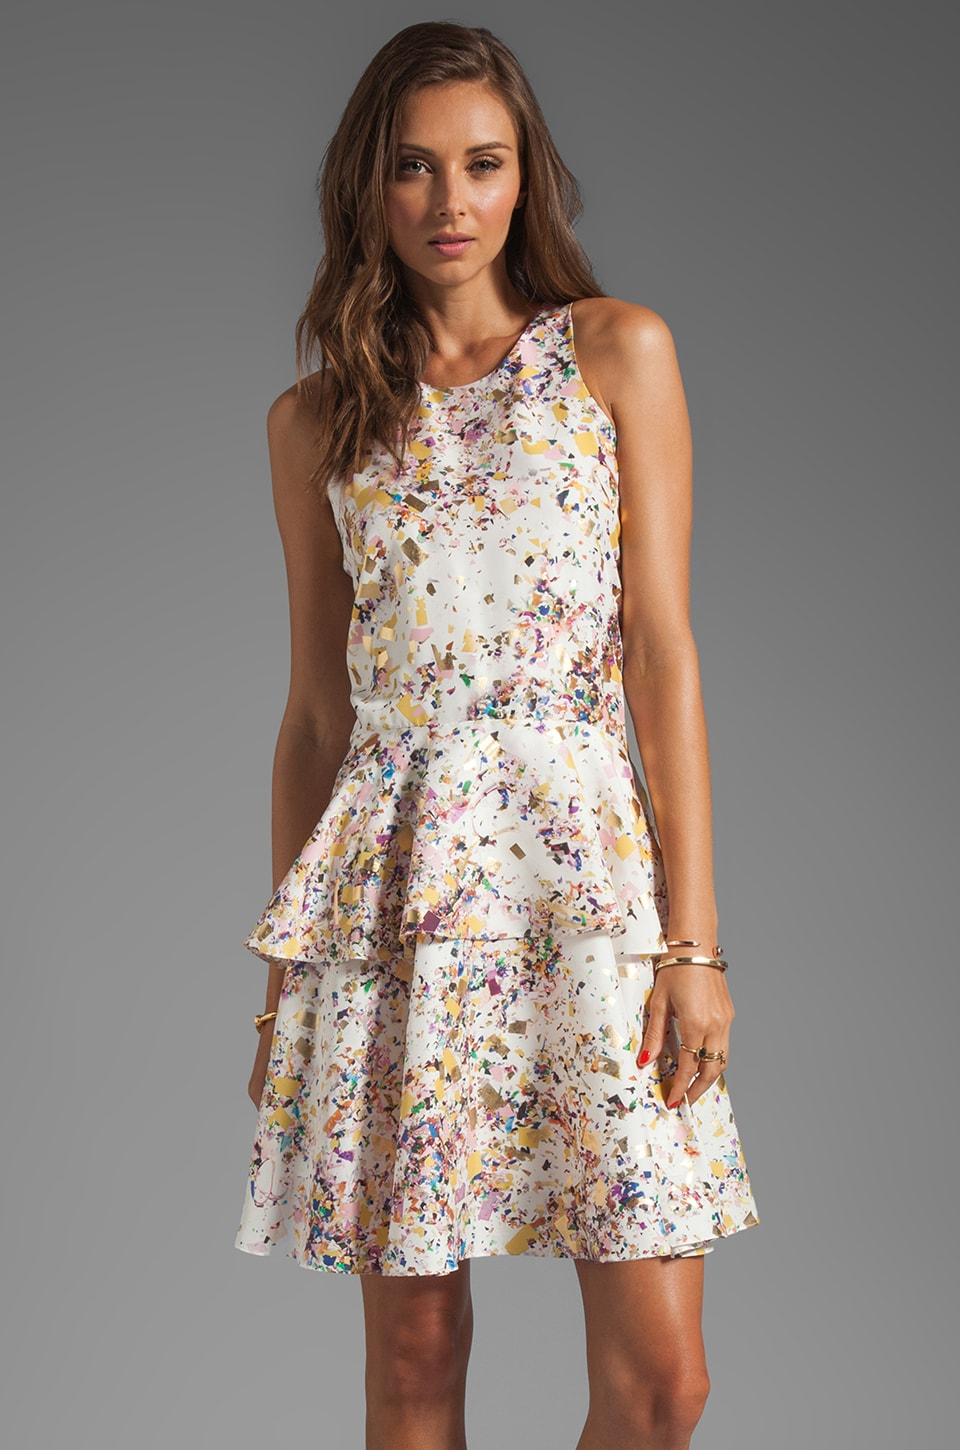 Cynthia Rowley Floral Overlay Dress in White